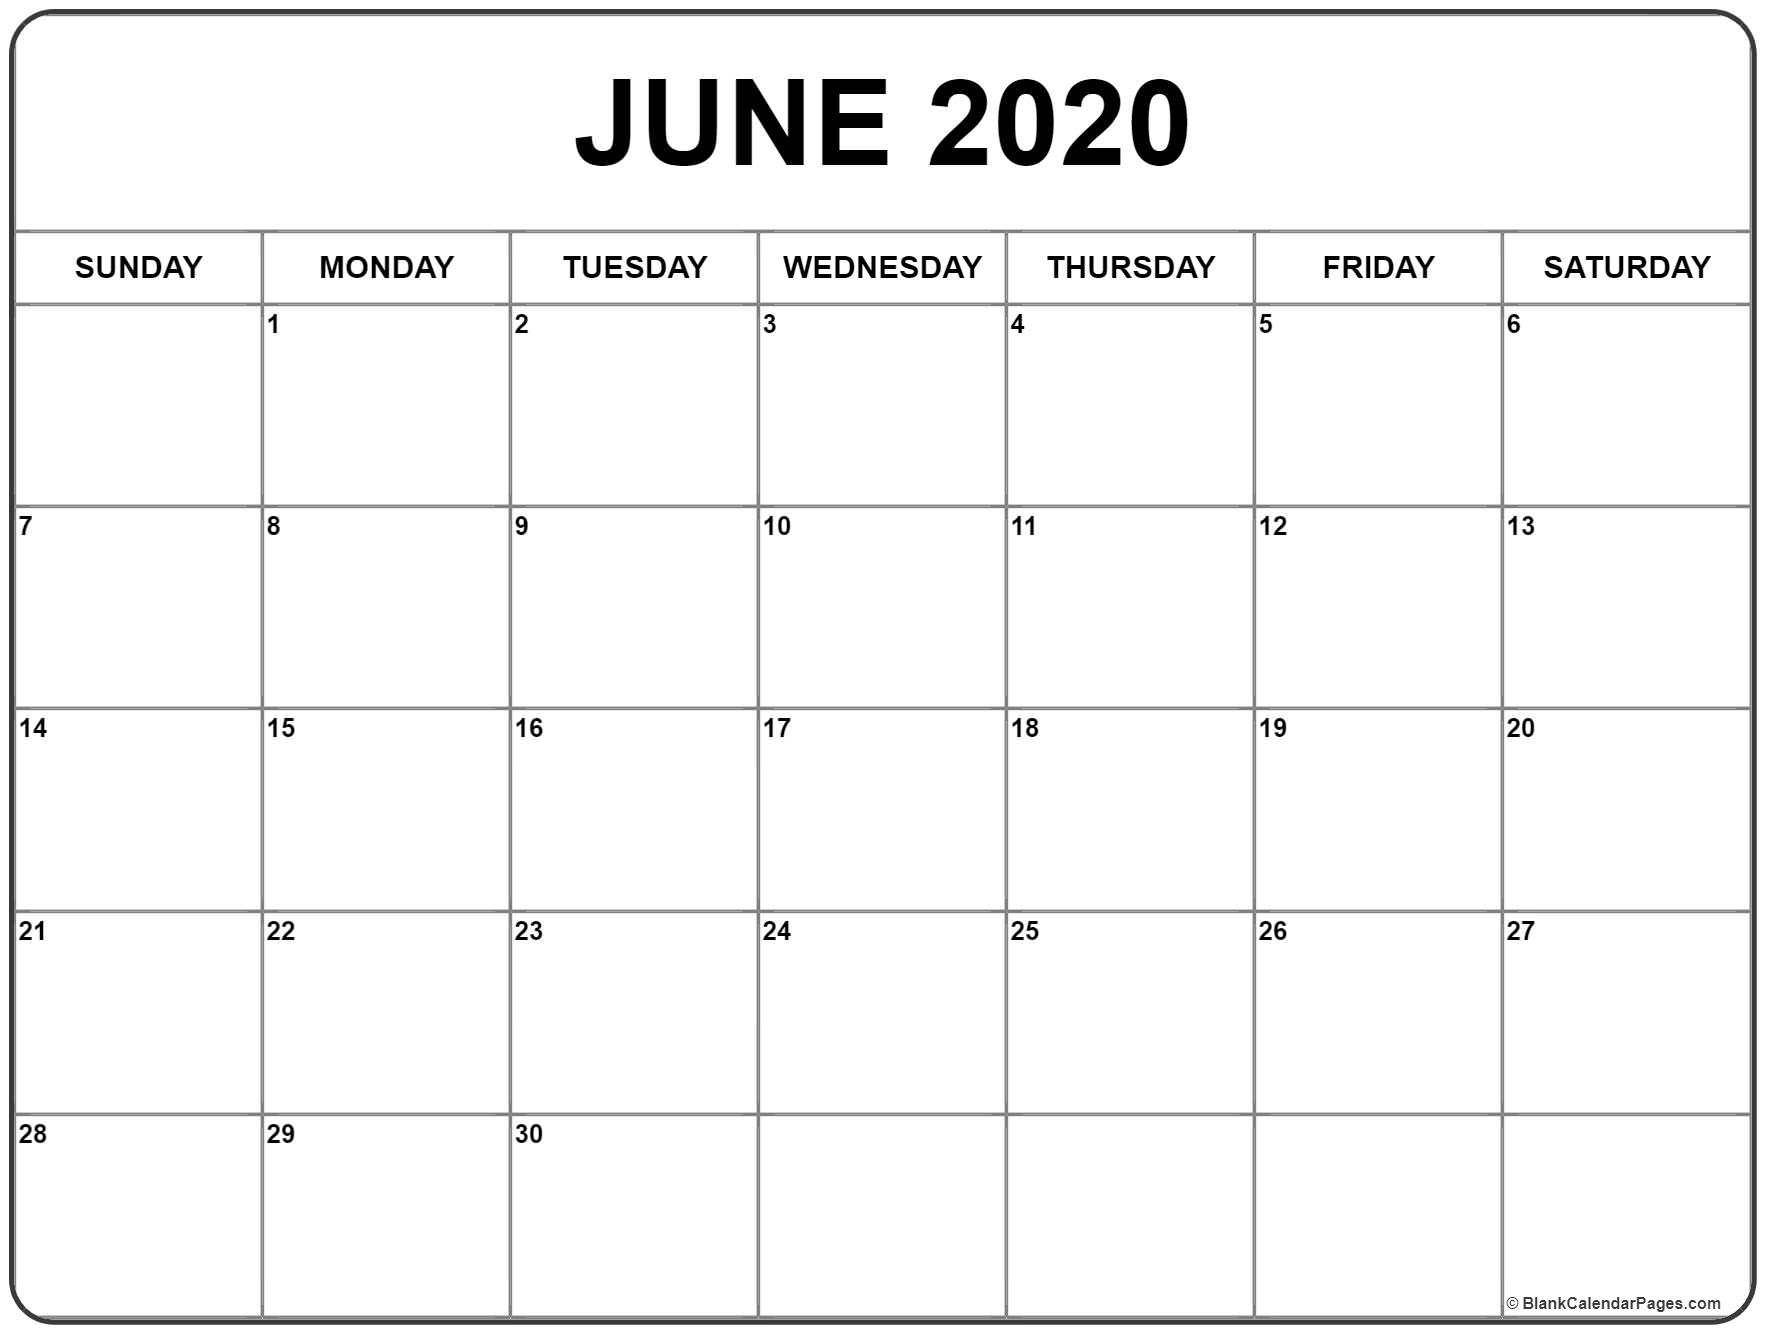 Printable Calendar June 2019 To June 2020 - Calendar